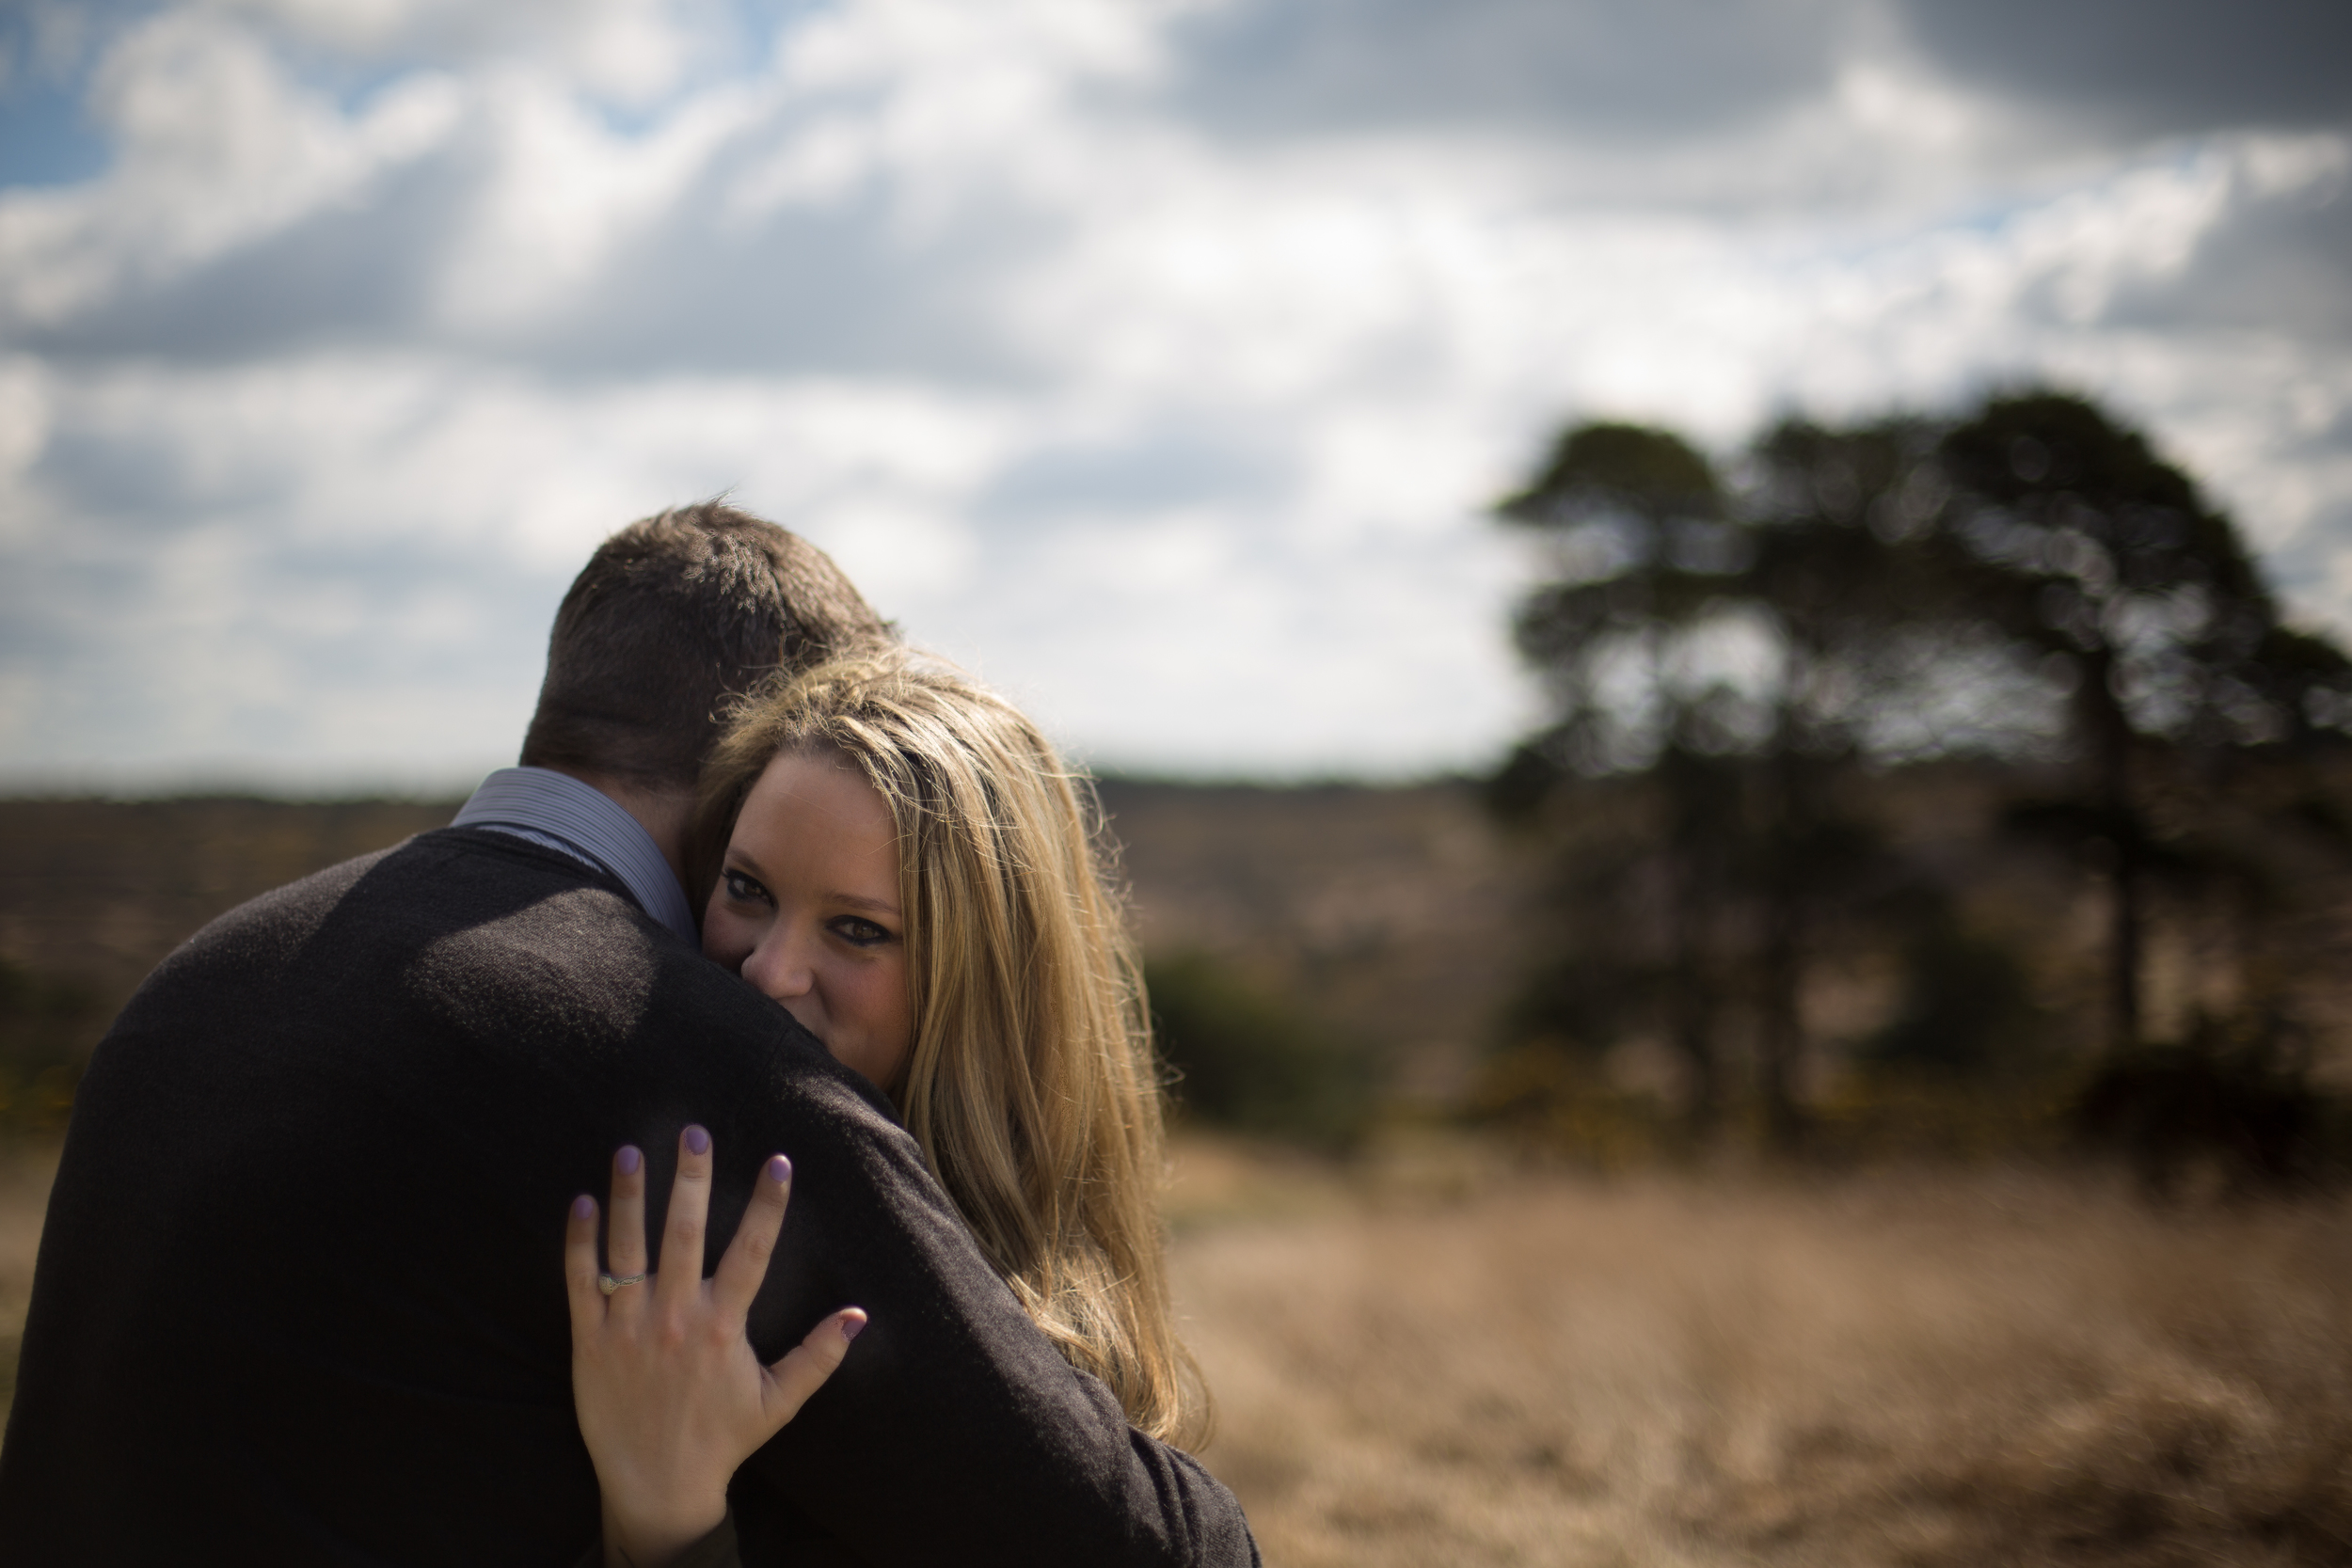 Ashdown-Forest-Pooh-Corner-Sussex-Engagement-Photography-10